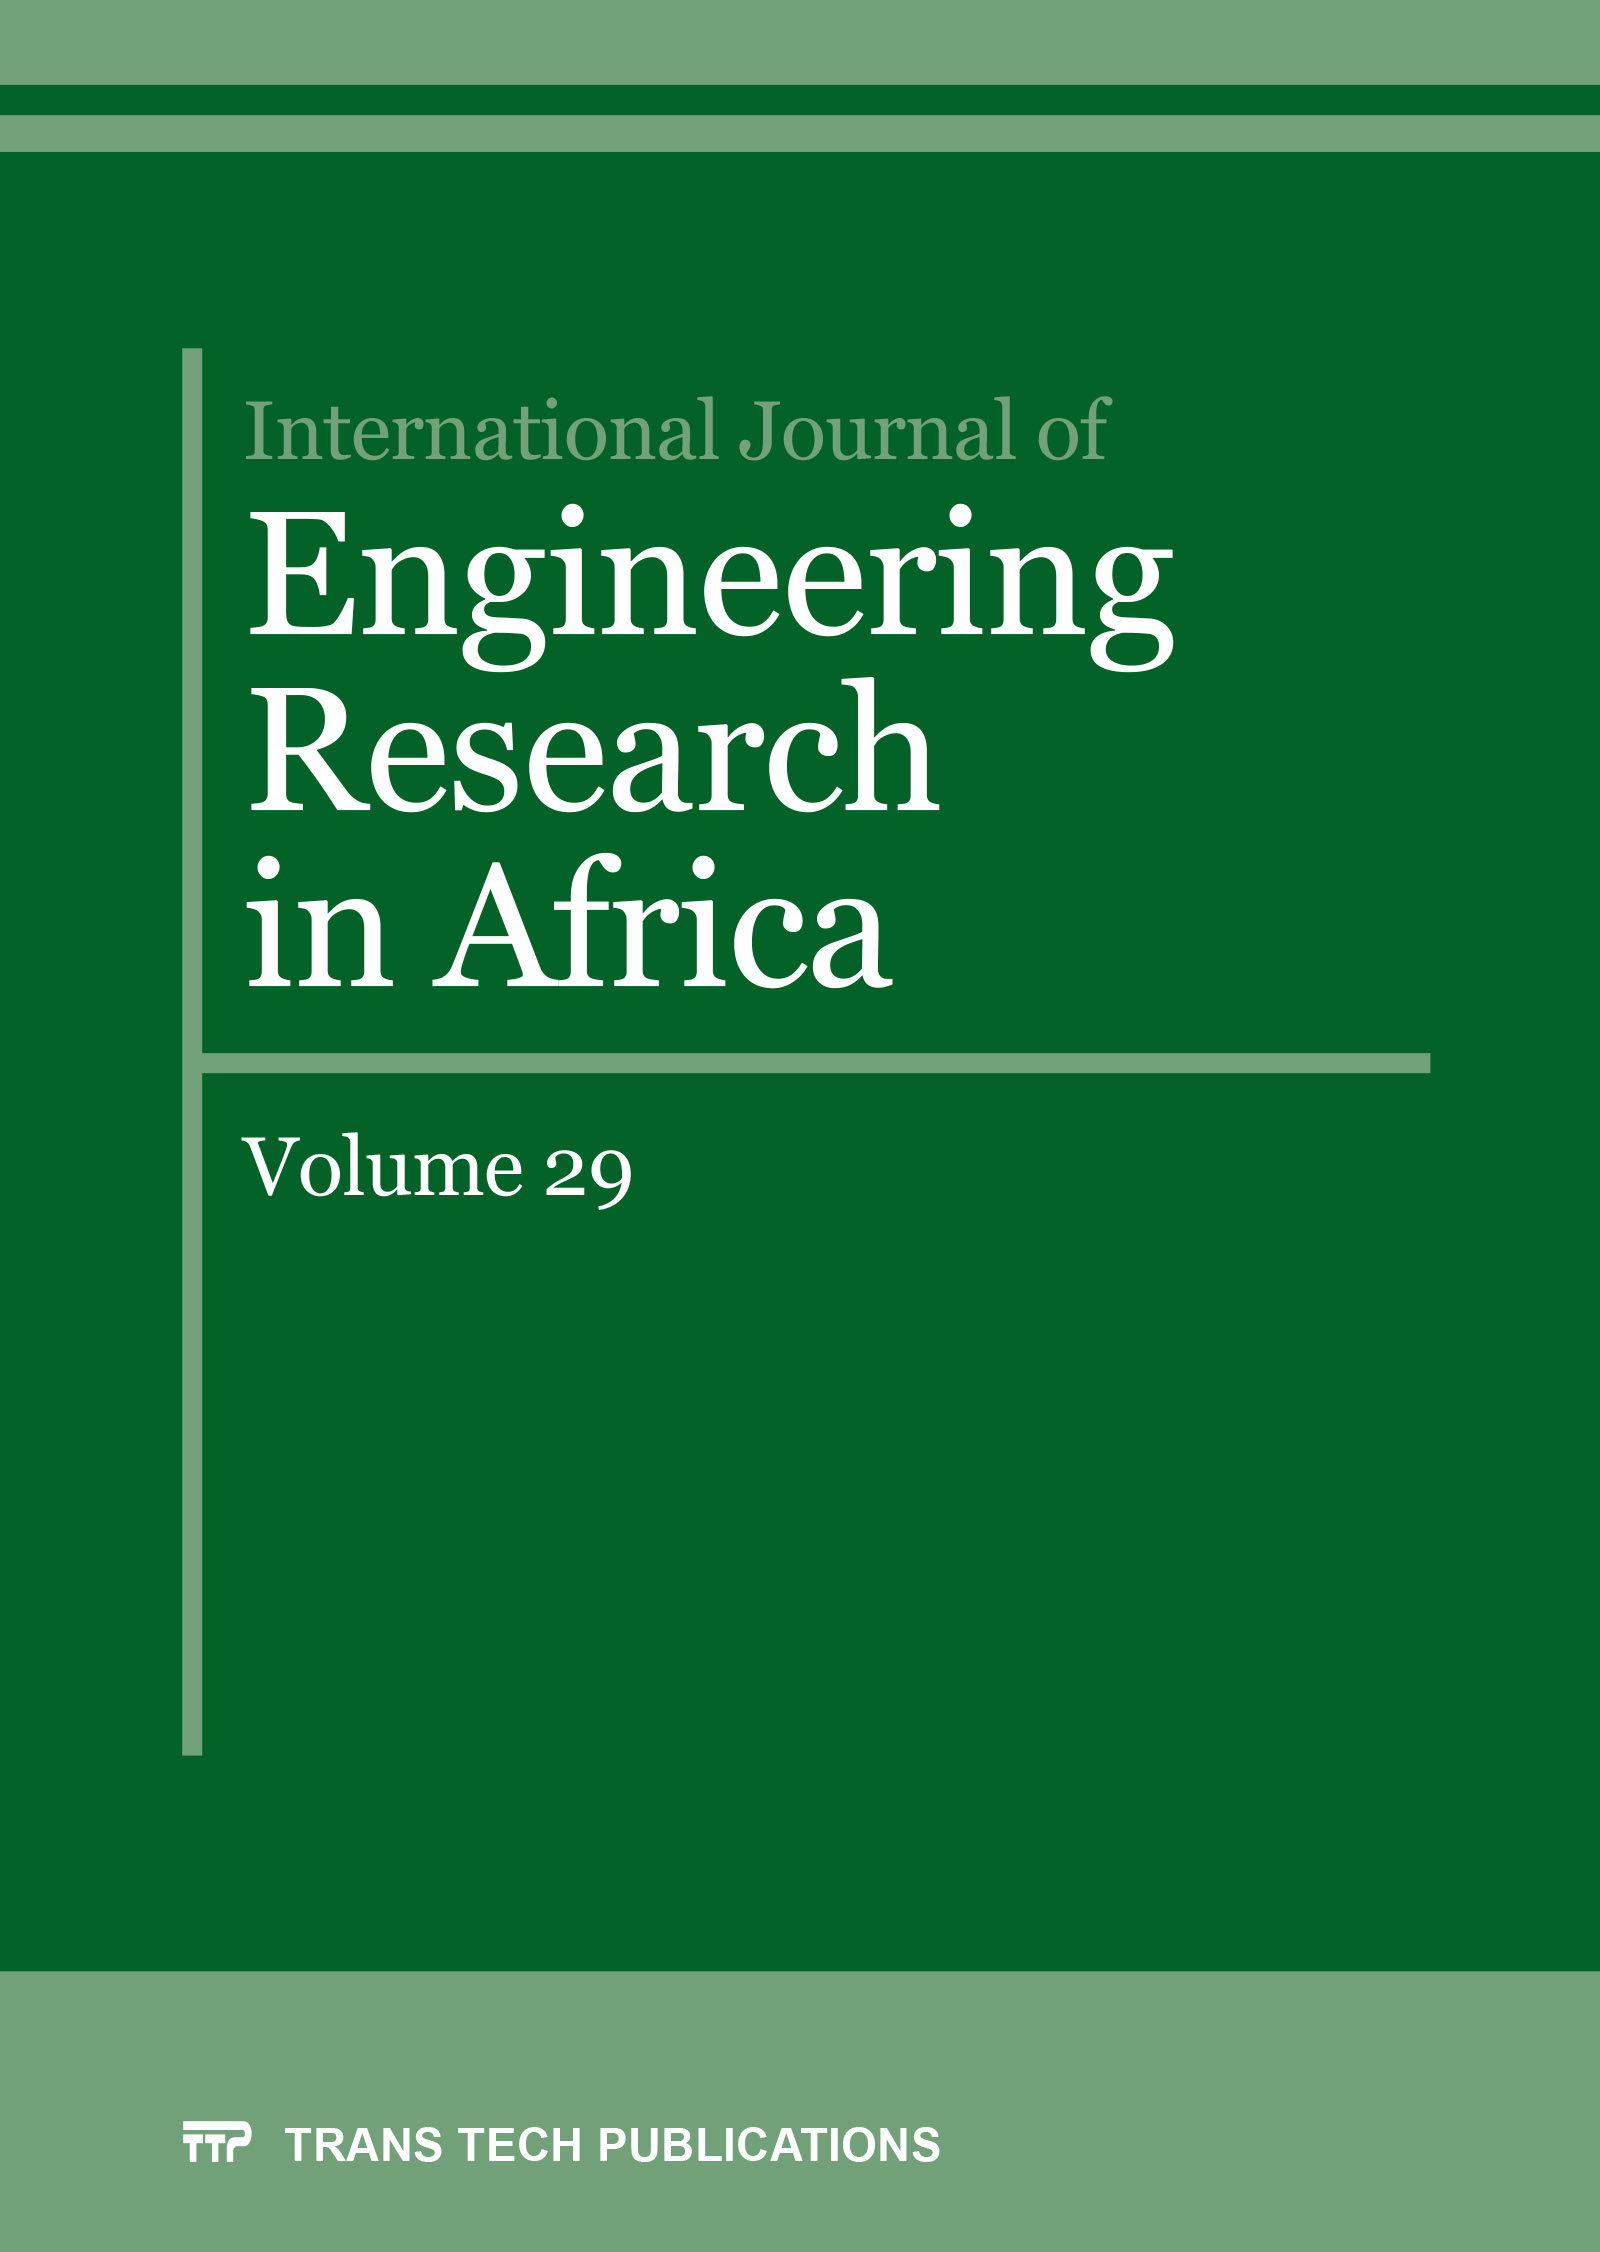 International Journal of Engineering Research in Africa Vol. 29